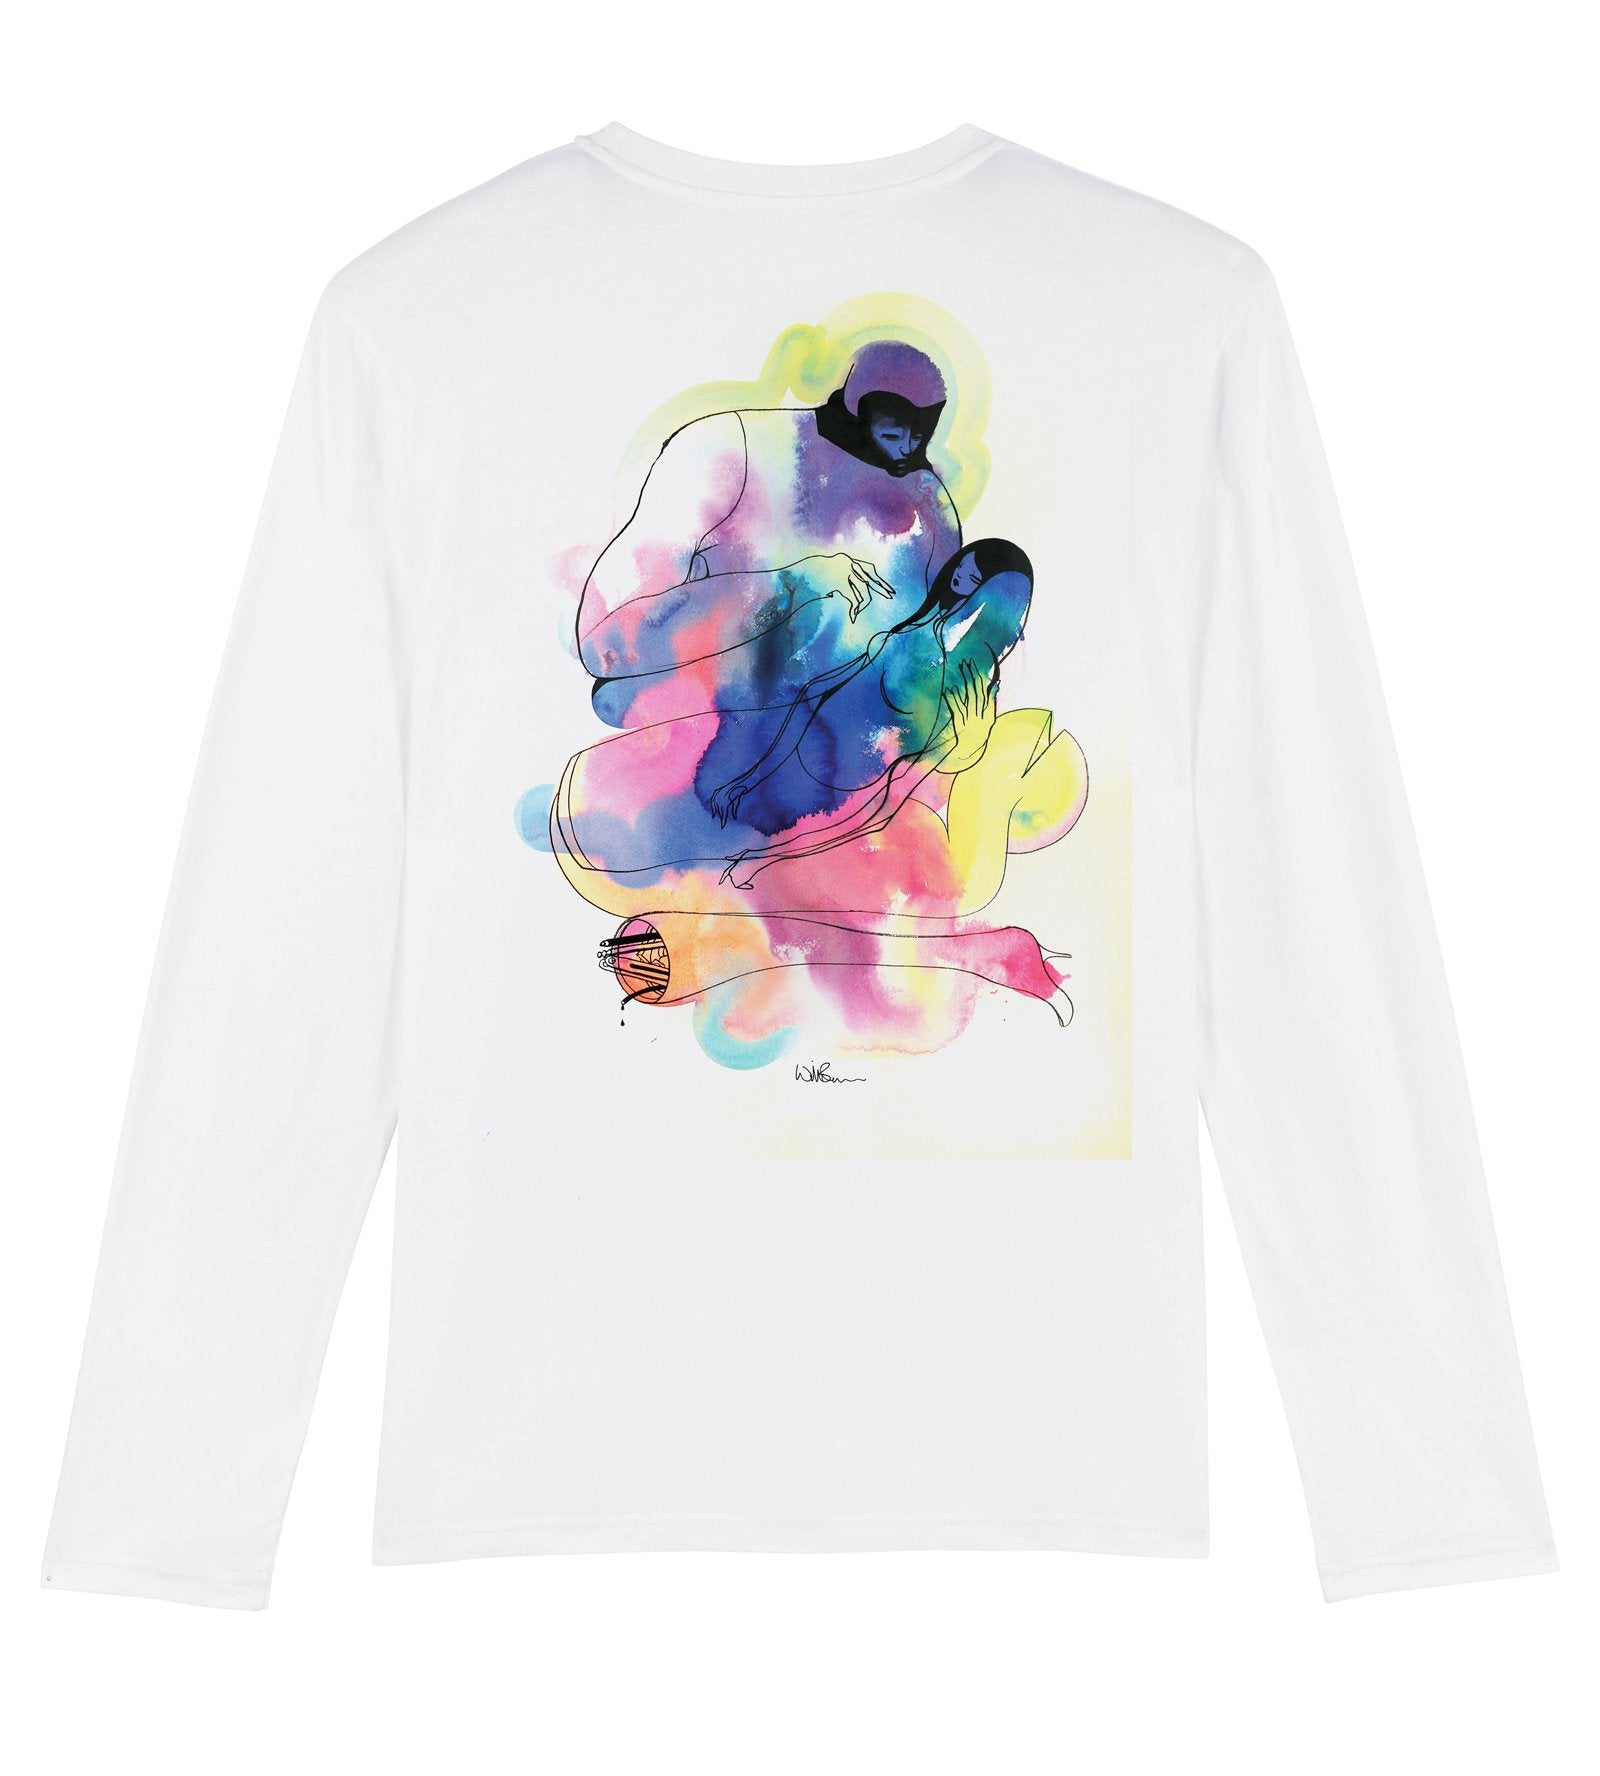 Will Barras 'Repair Work' Long Sleeve T-Shirt